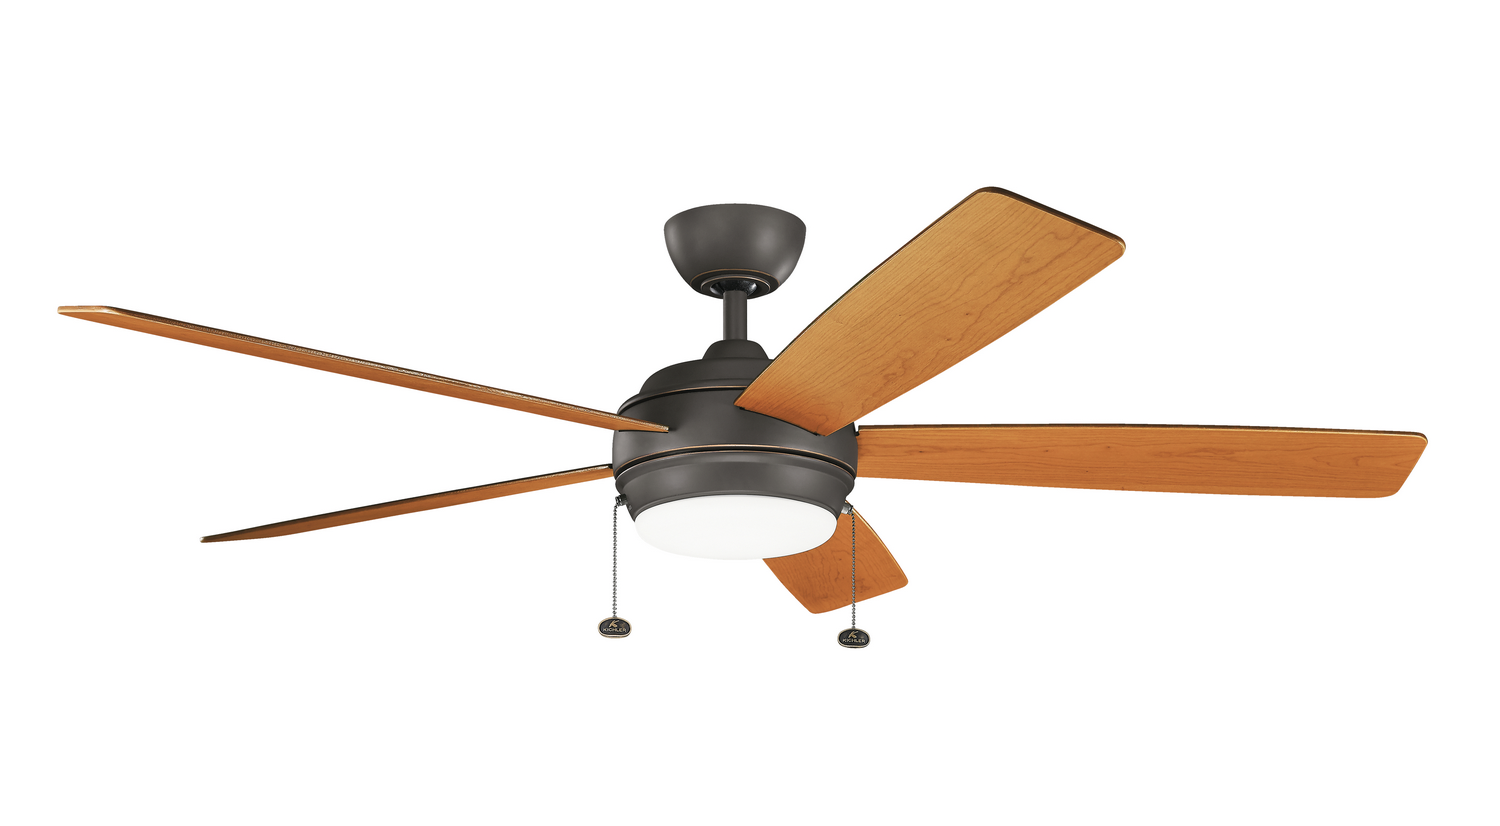 60 inchCeiling Fan from the Starkk collection by Kichler 330180OZ